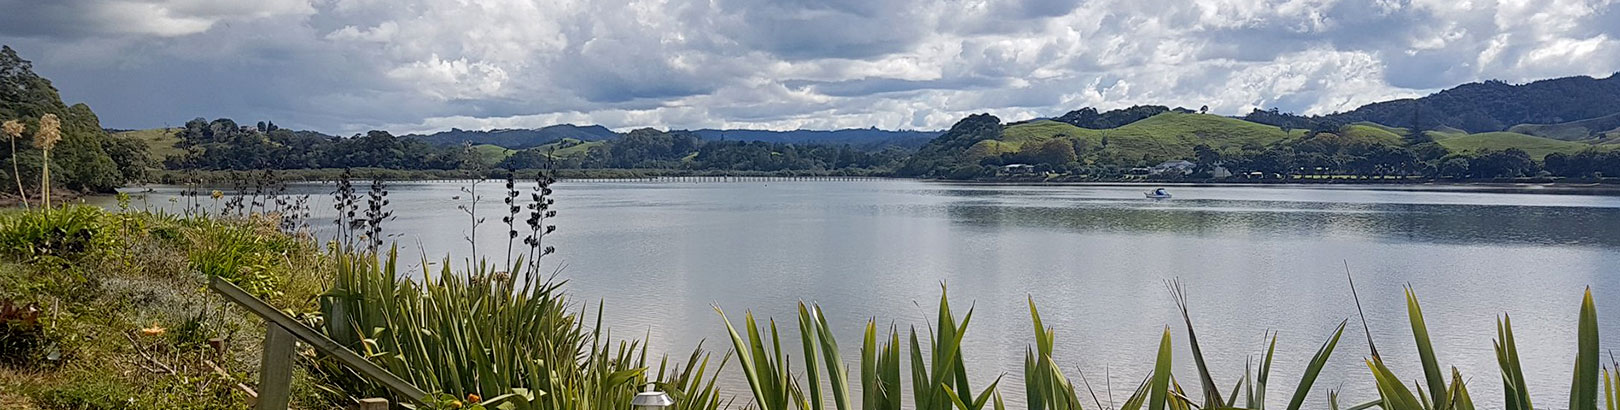 Whananaki a great Northland holiday location with the longest walking bridge in the southern hemisphere